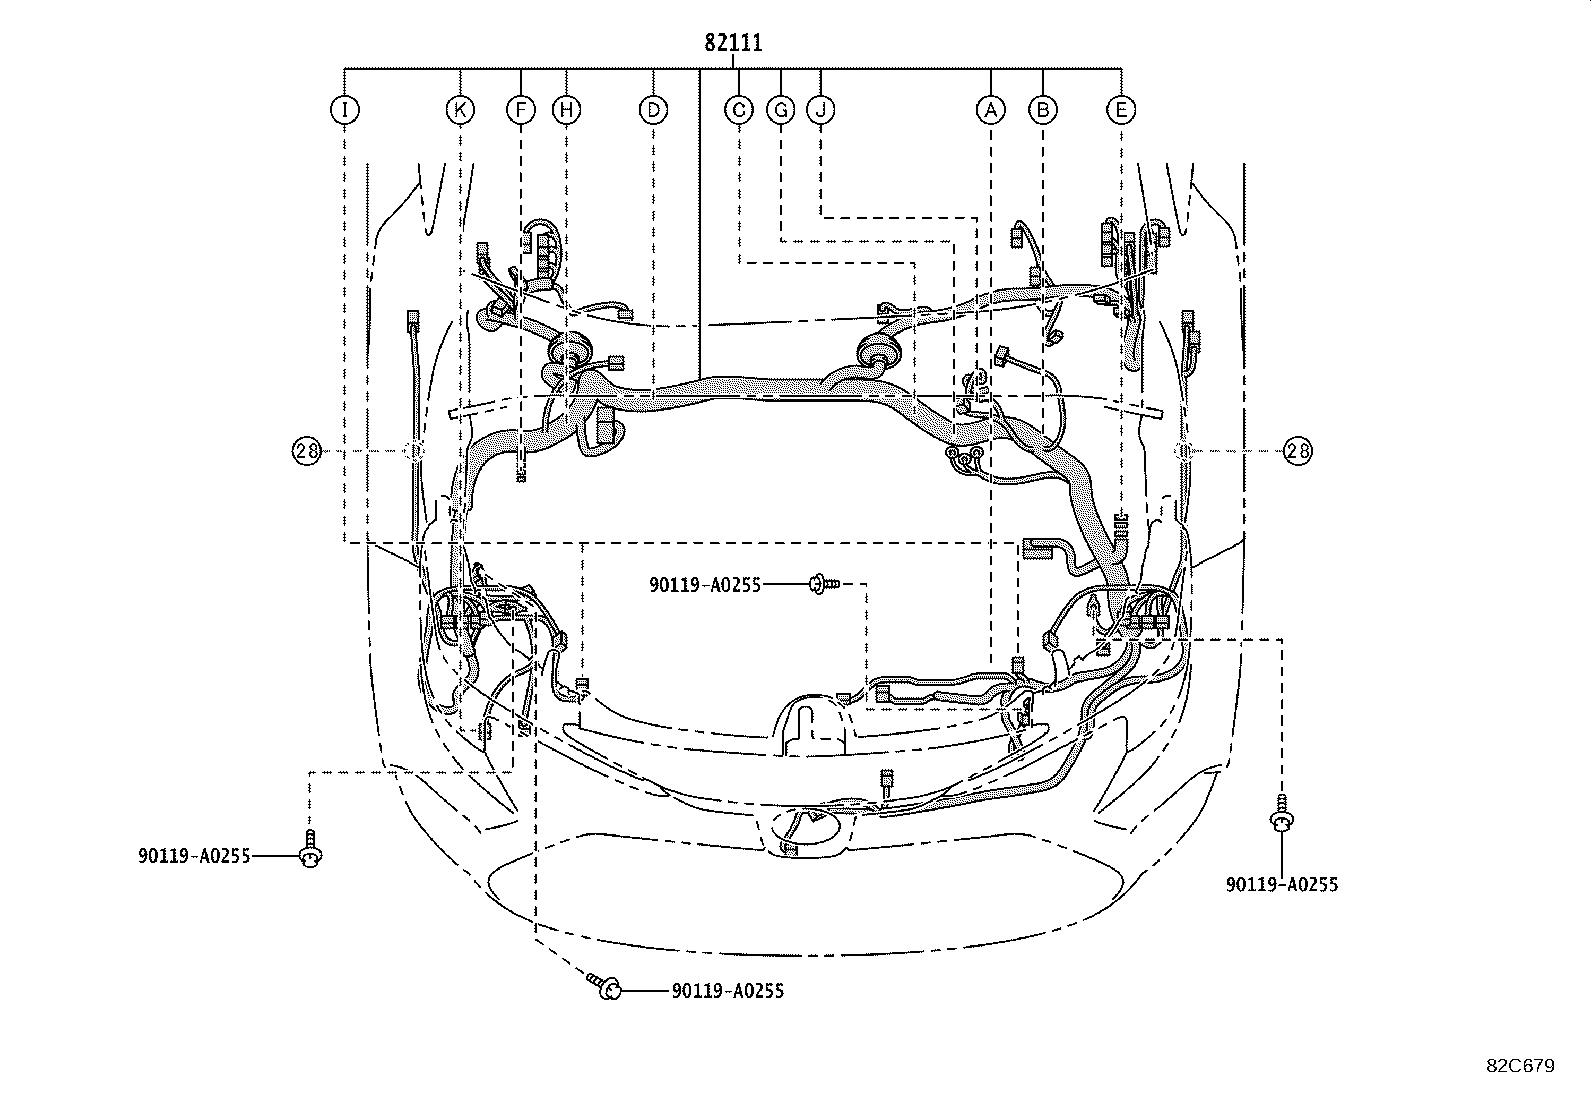 Toyota Corolla Protector Wiring Harness No 3 Wiring